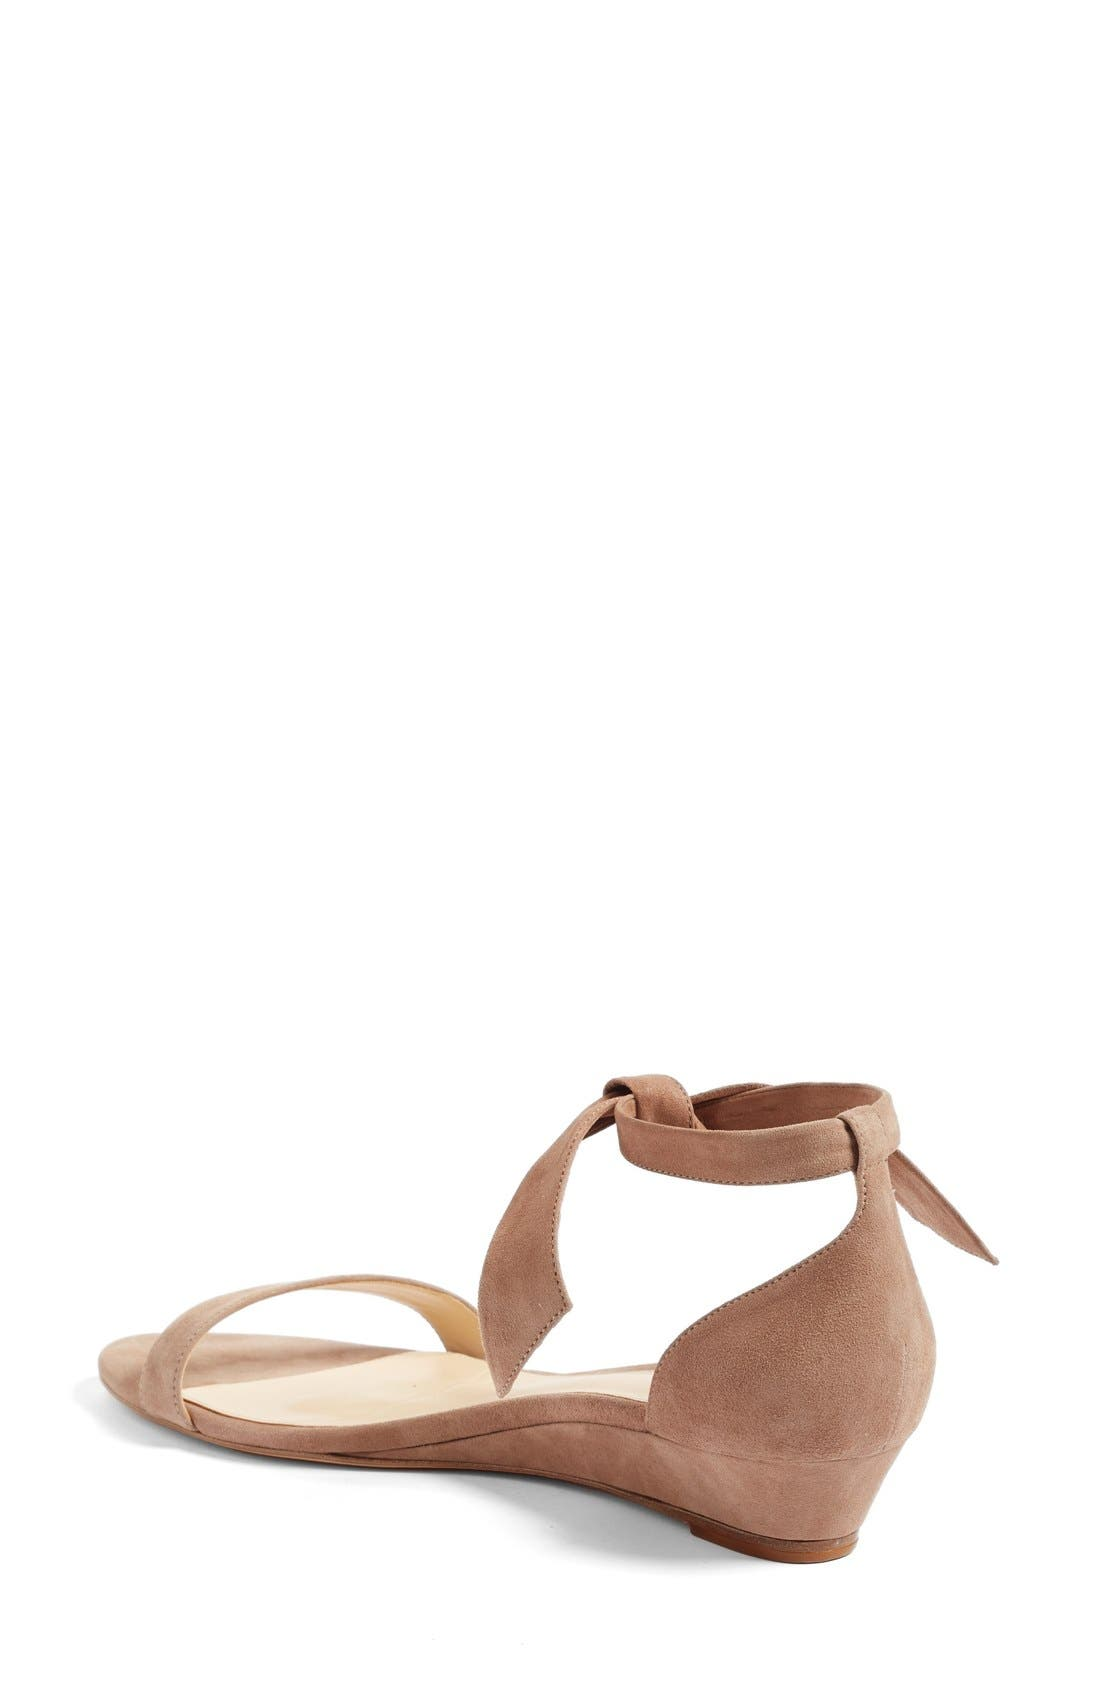 Atena Tie Strap Wedge Sandal,                             Alternate thumbnail 4, color,